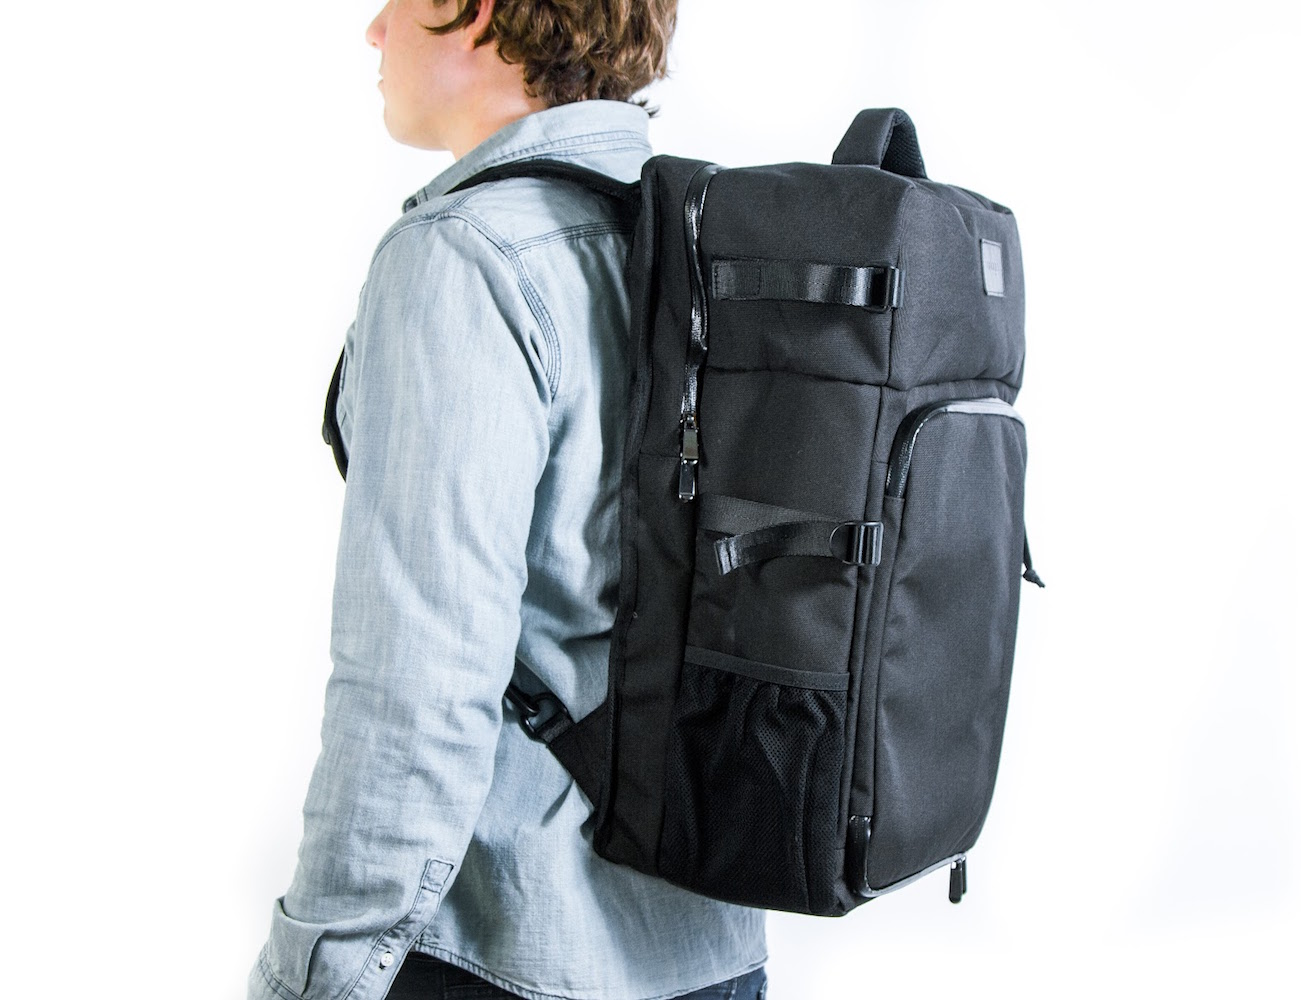 Progo+%26%238211%3B+A+Revolutionary+Carry-on+Or+Camera+Backpack